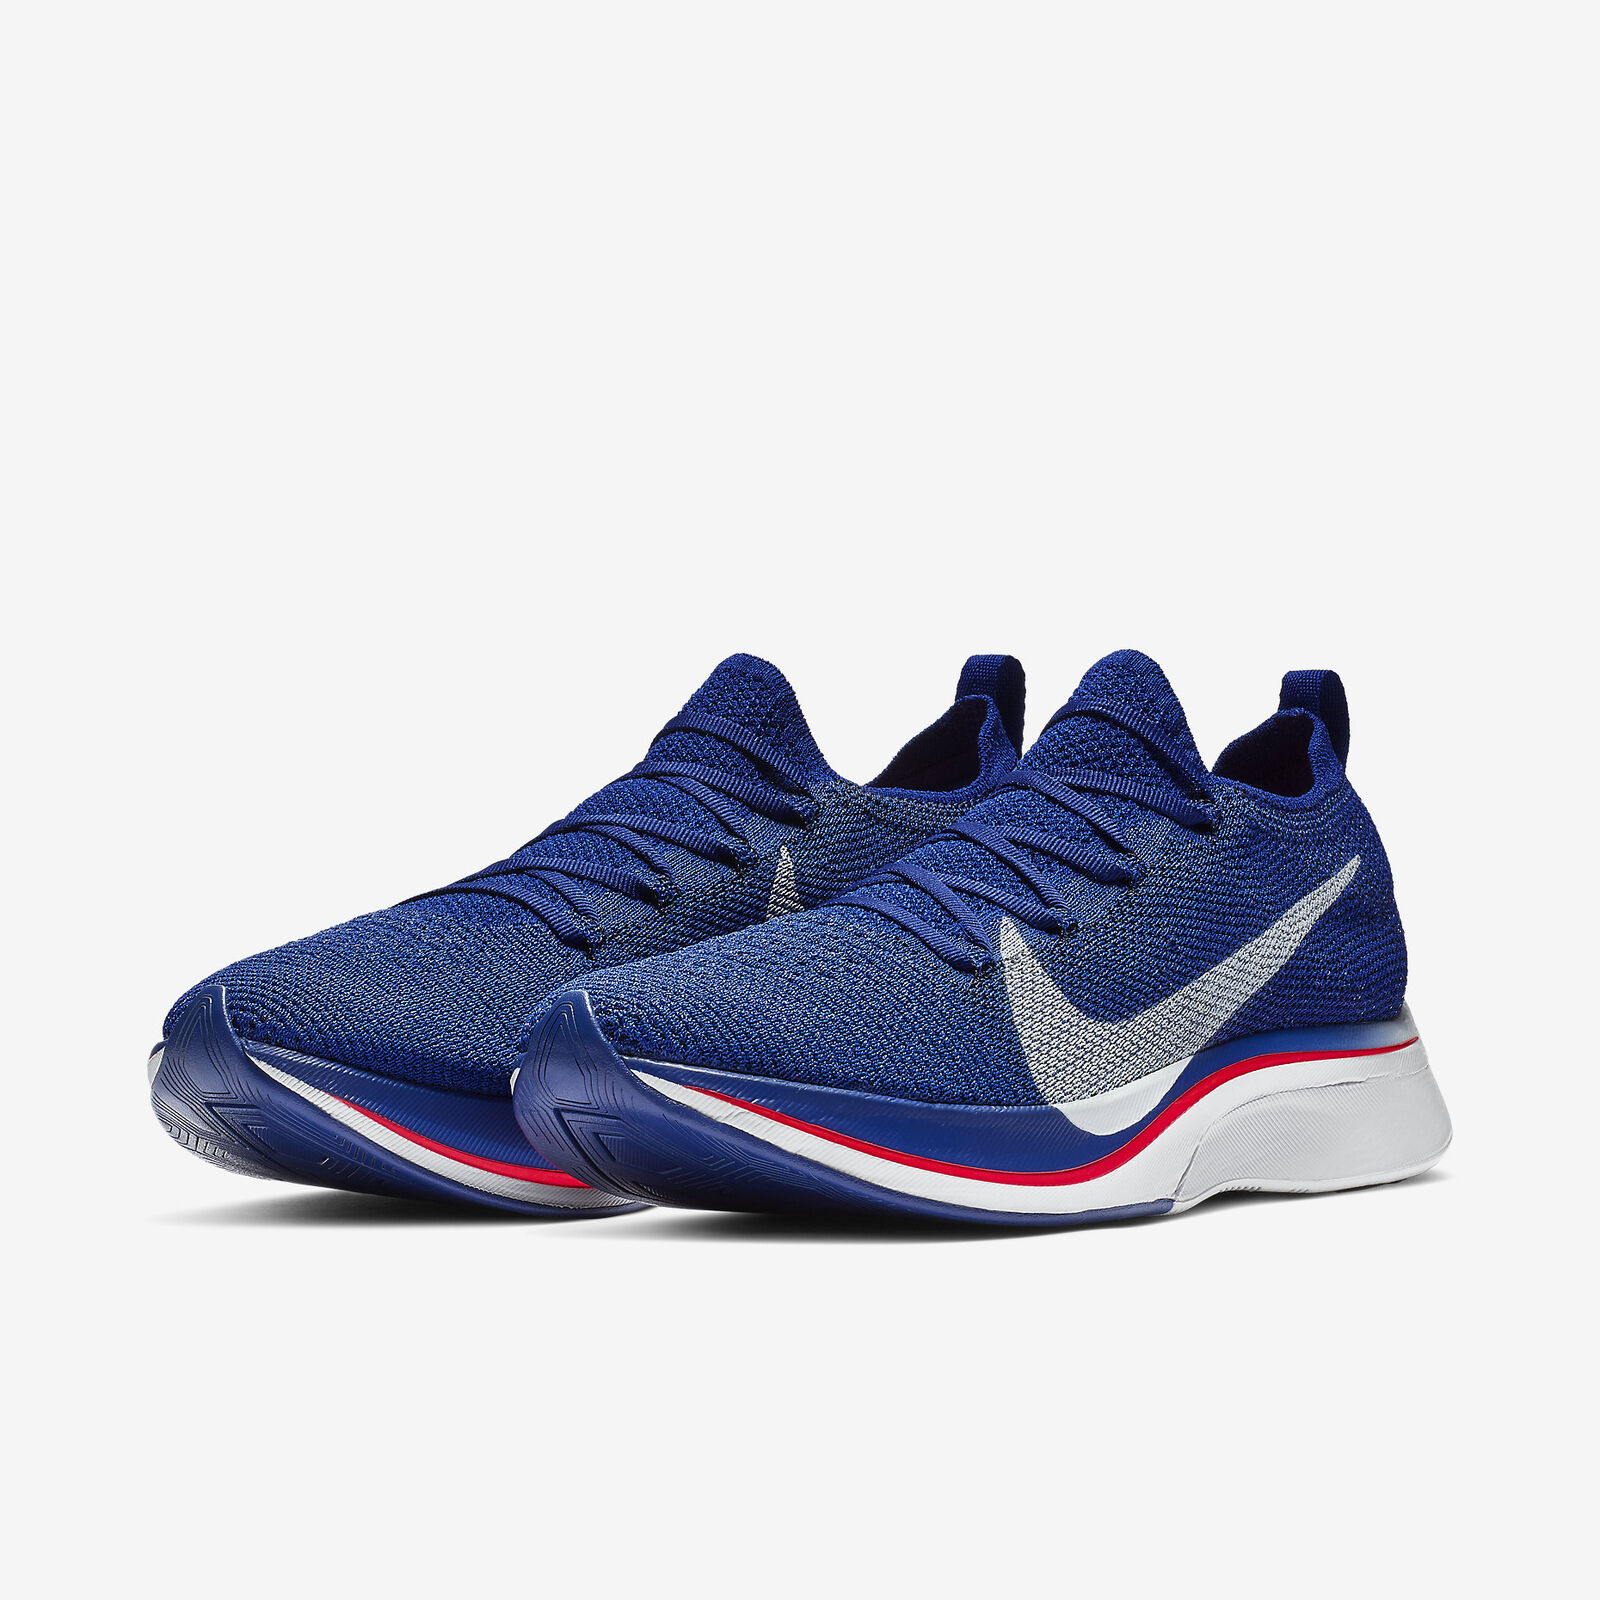 Nike Zoom Vaporfly 4% Flyknit Deep Royal bluee Unisex Mens Running 2018 ORDER NOW